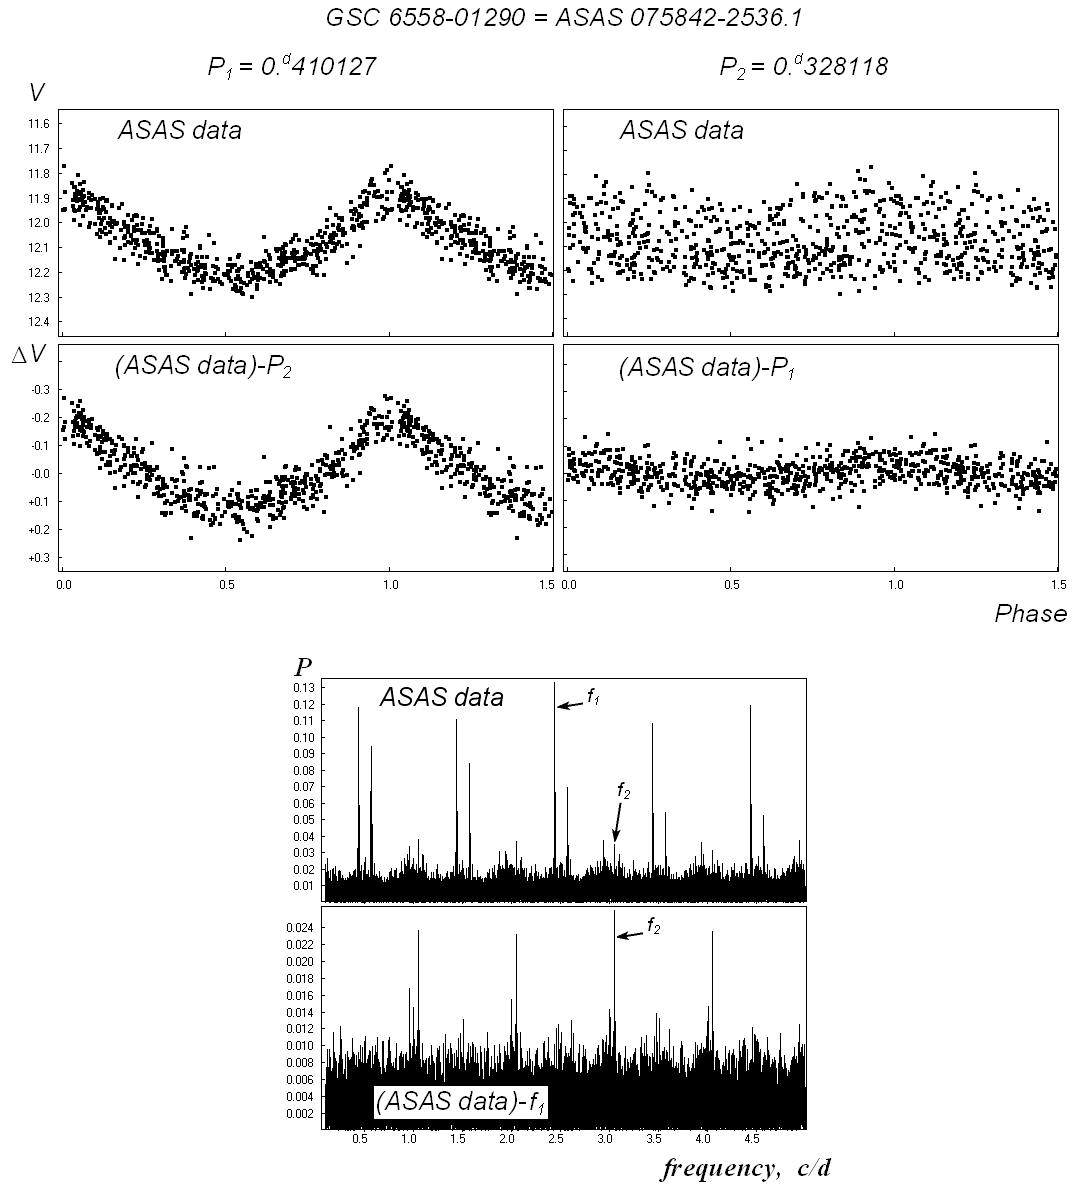 GSC 6558-01290, a New Double-Mode RR Lyrae Variable Star